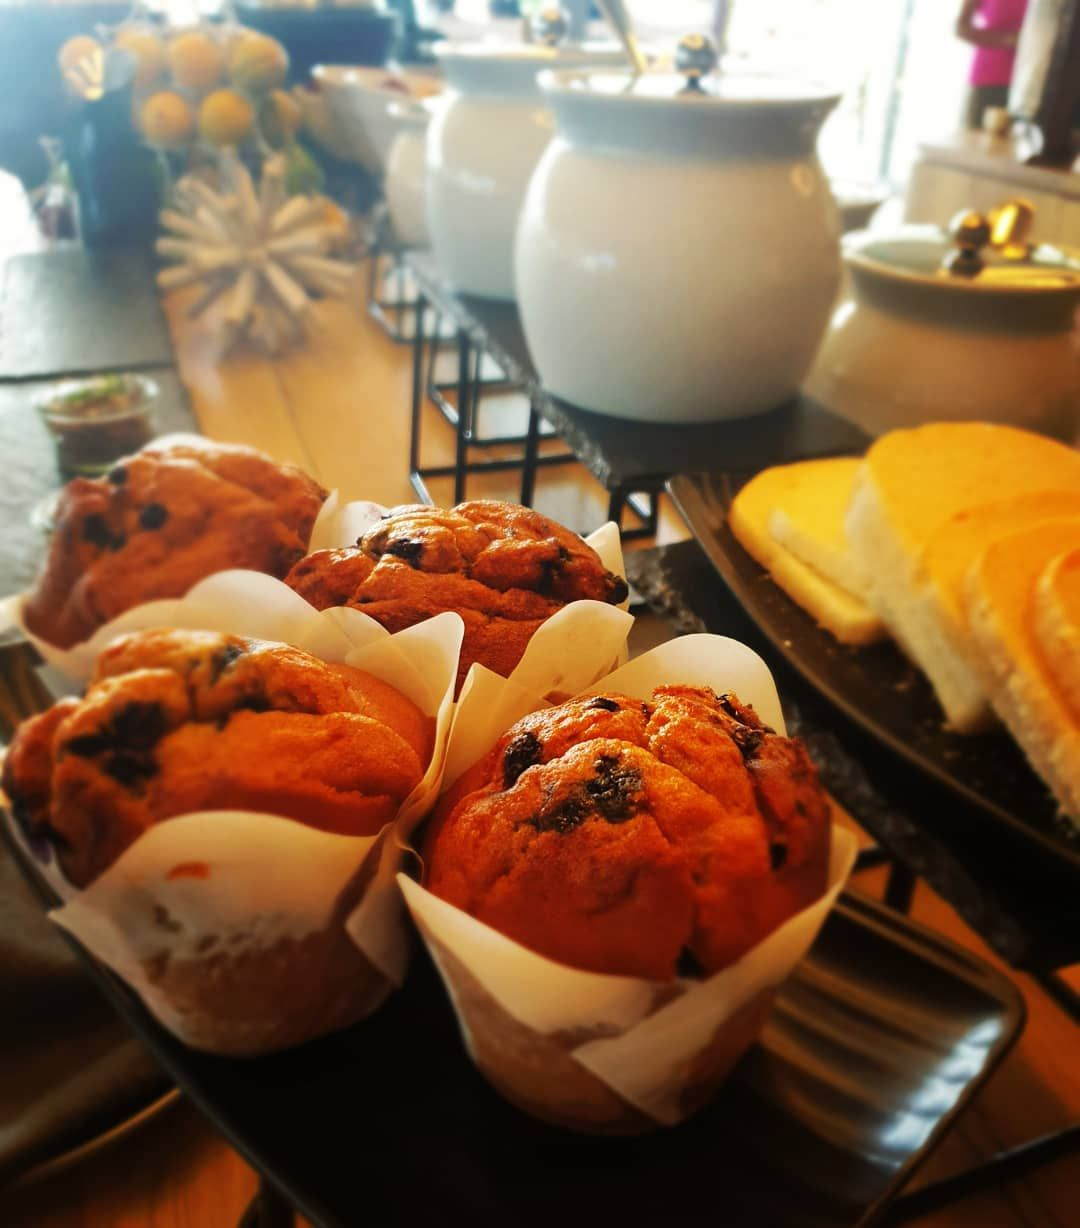 New] The 10 Best Food (with Pictures) - What a way to wake up  @riley.crystalbrookcollection #food #travel #holidays #rileycrystalbr… |  Food, Best foods, Breakfast